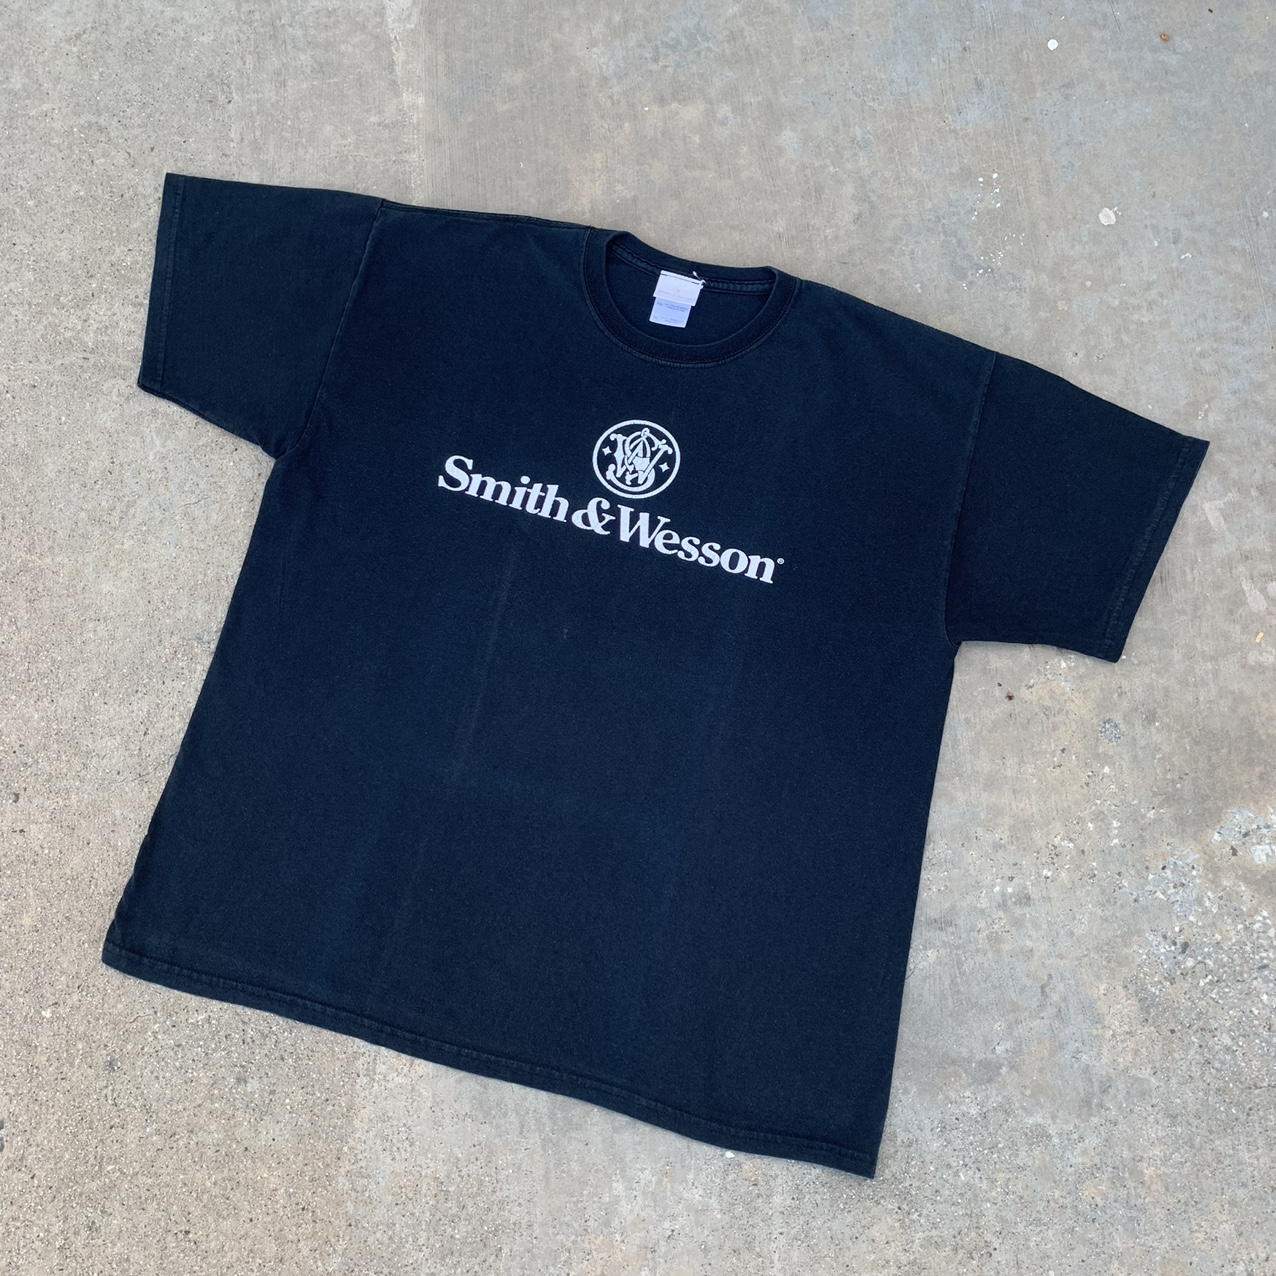 Product Image 1 - Vintage Smith & Wesson T-shirt